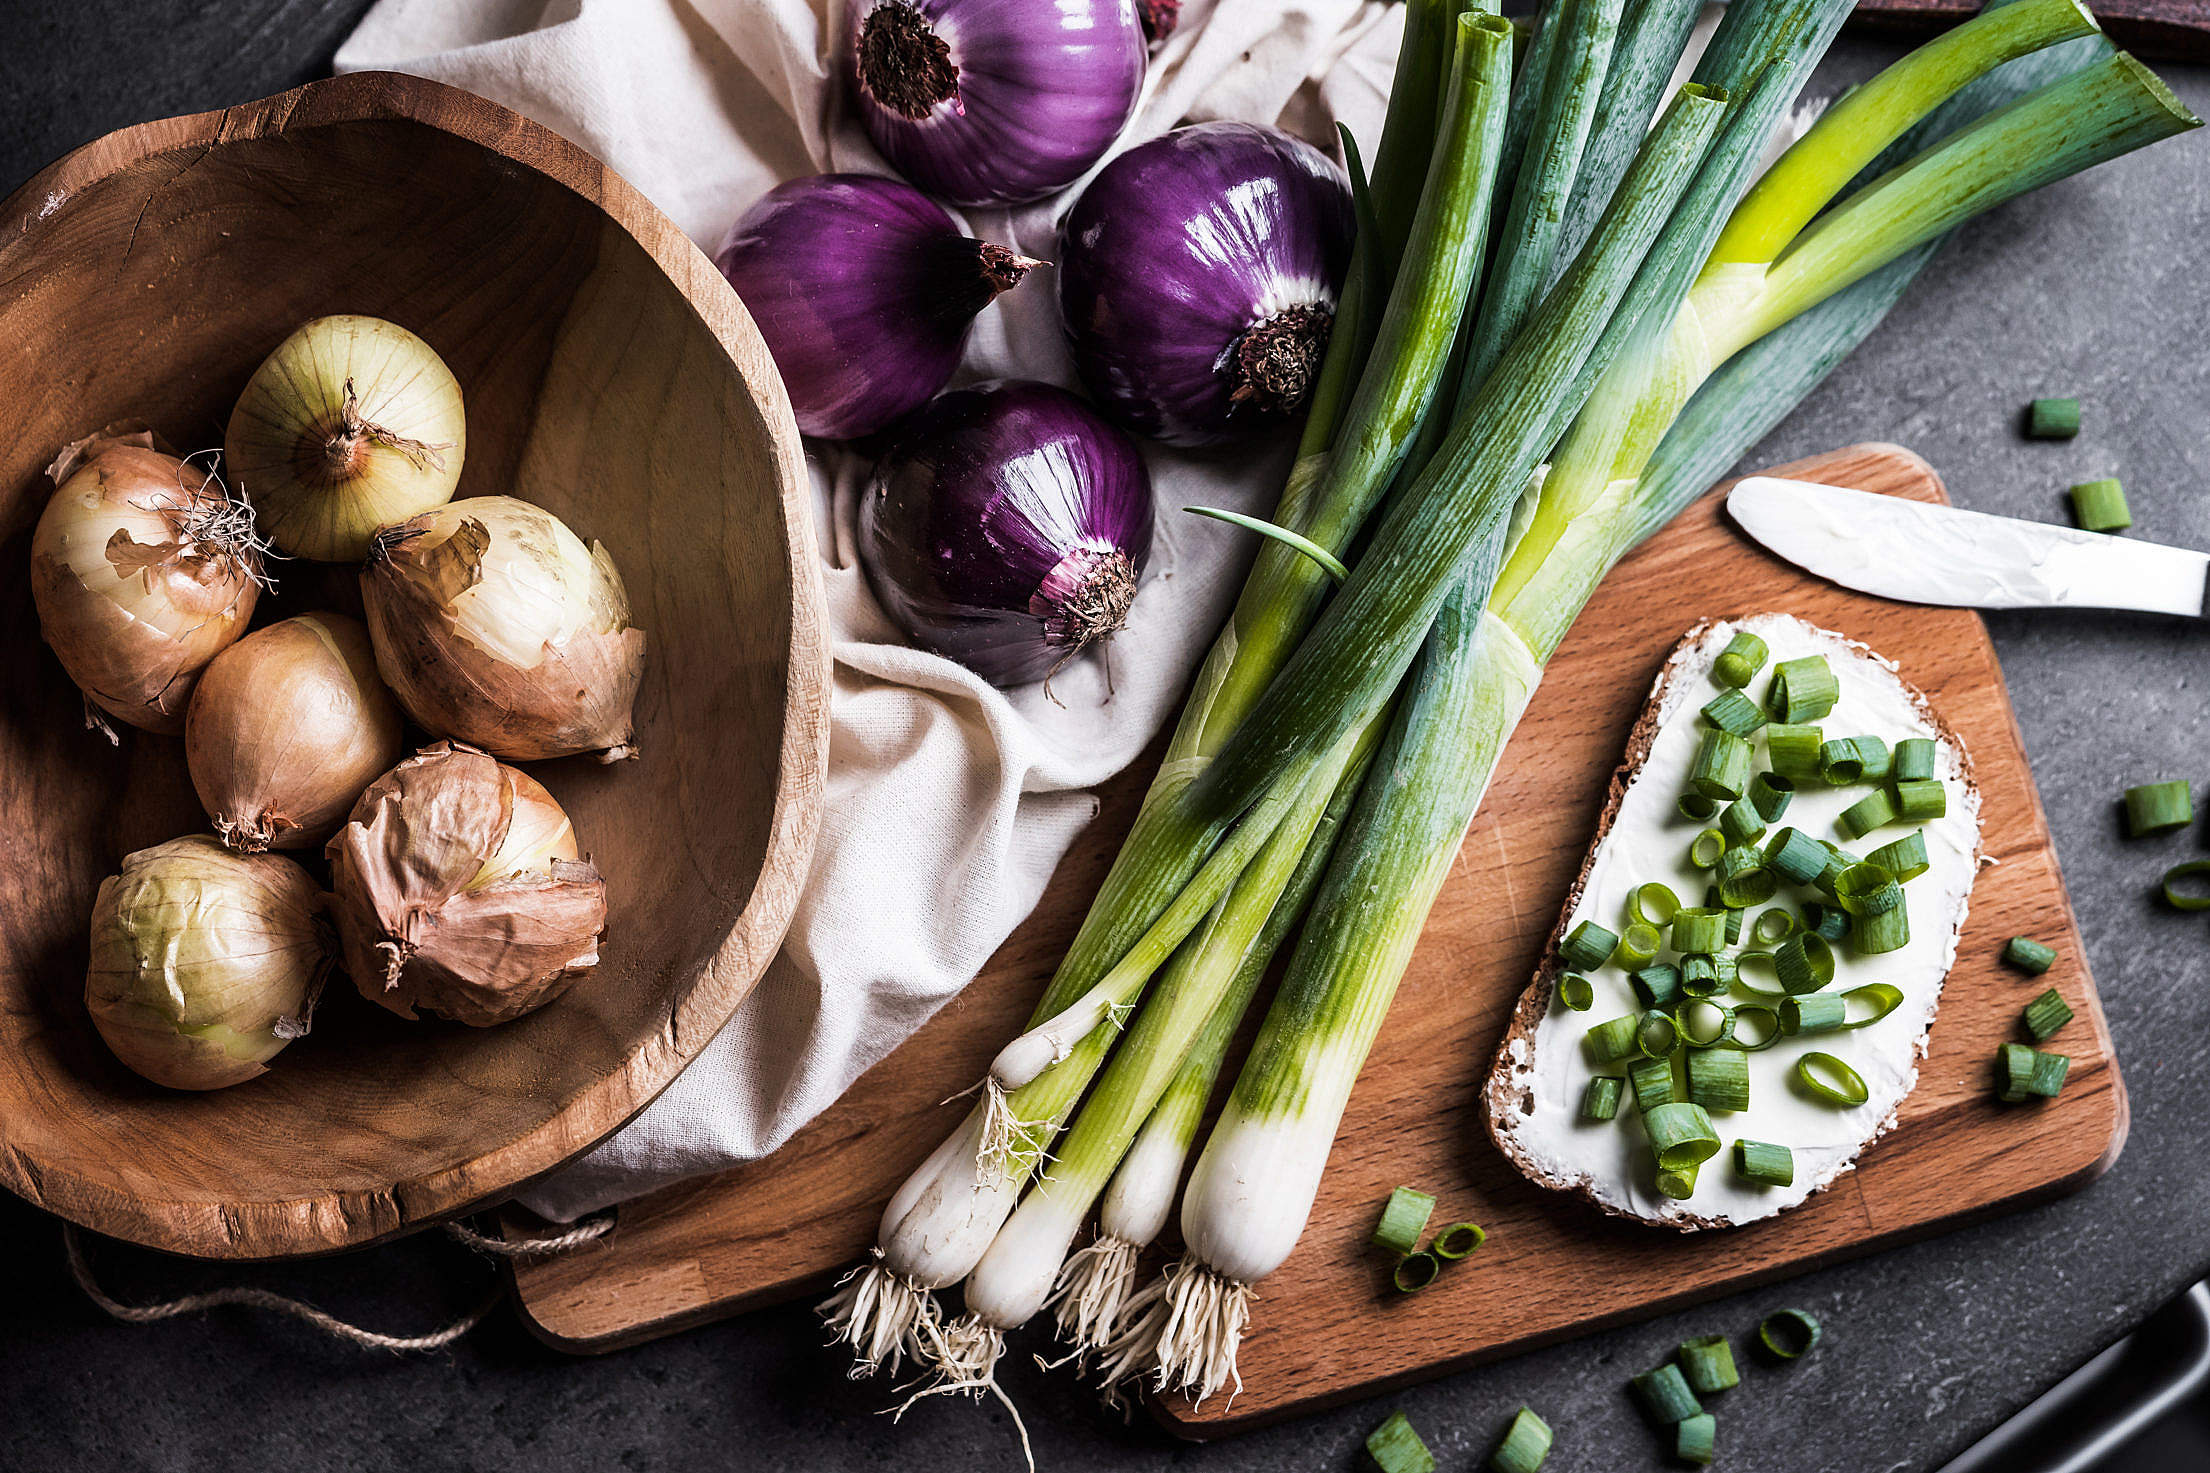 Onions and Super Healthy Morning Detox Breakfast Free Stock Photo